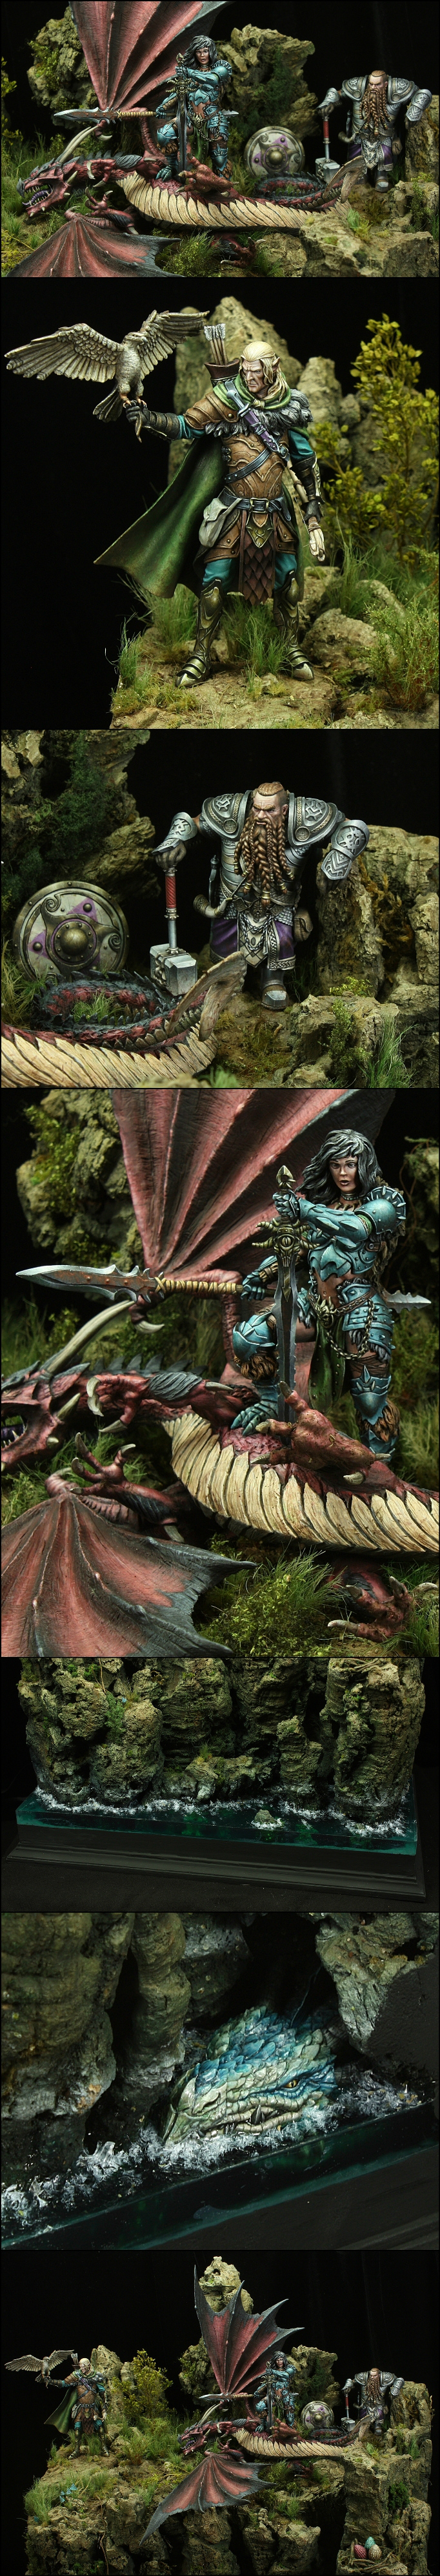 Dragon Hunters - Detail shots